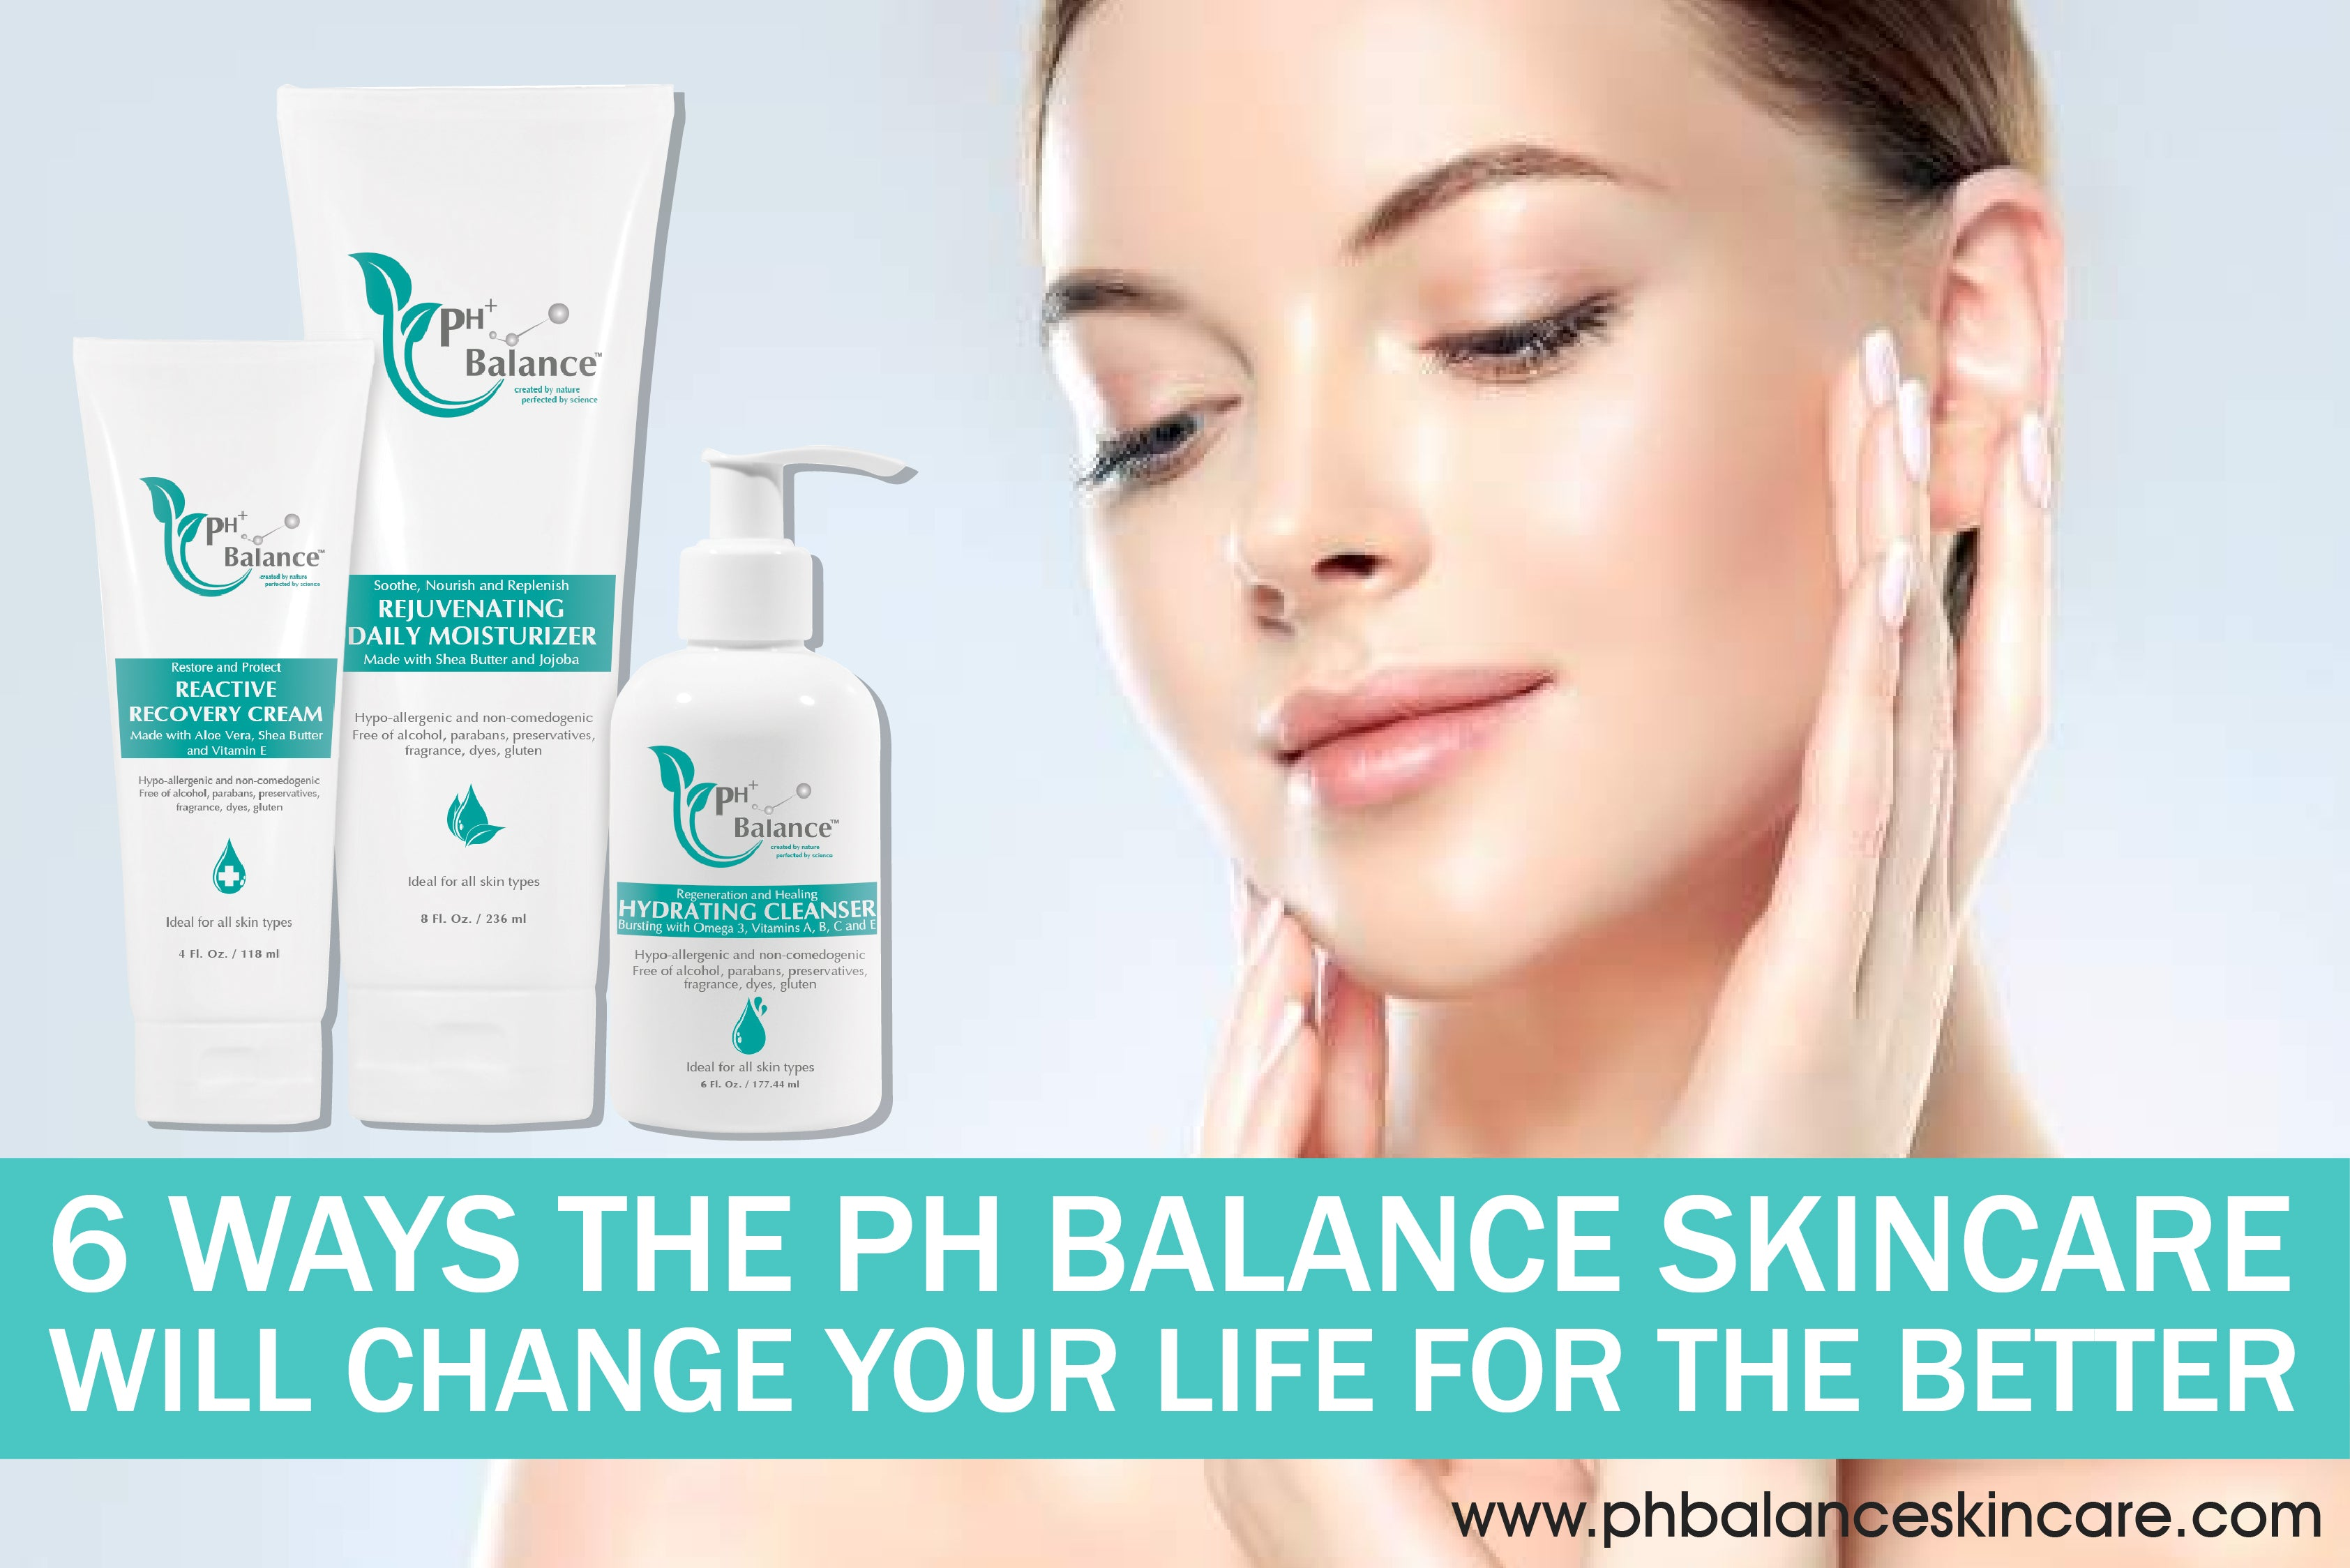 6 Ways The PH Balance Skincare Will Change Your Life For The Better, ph balance, skincare, better skin, glowing skin, glass skin